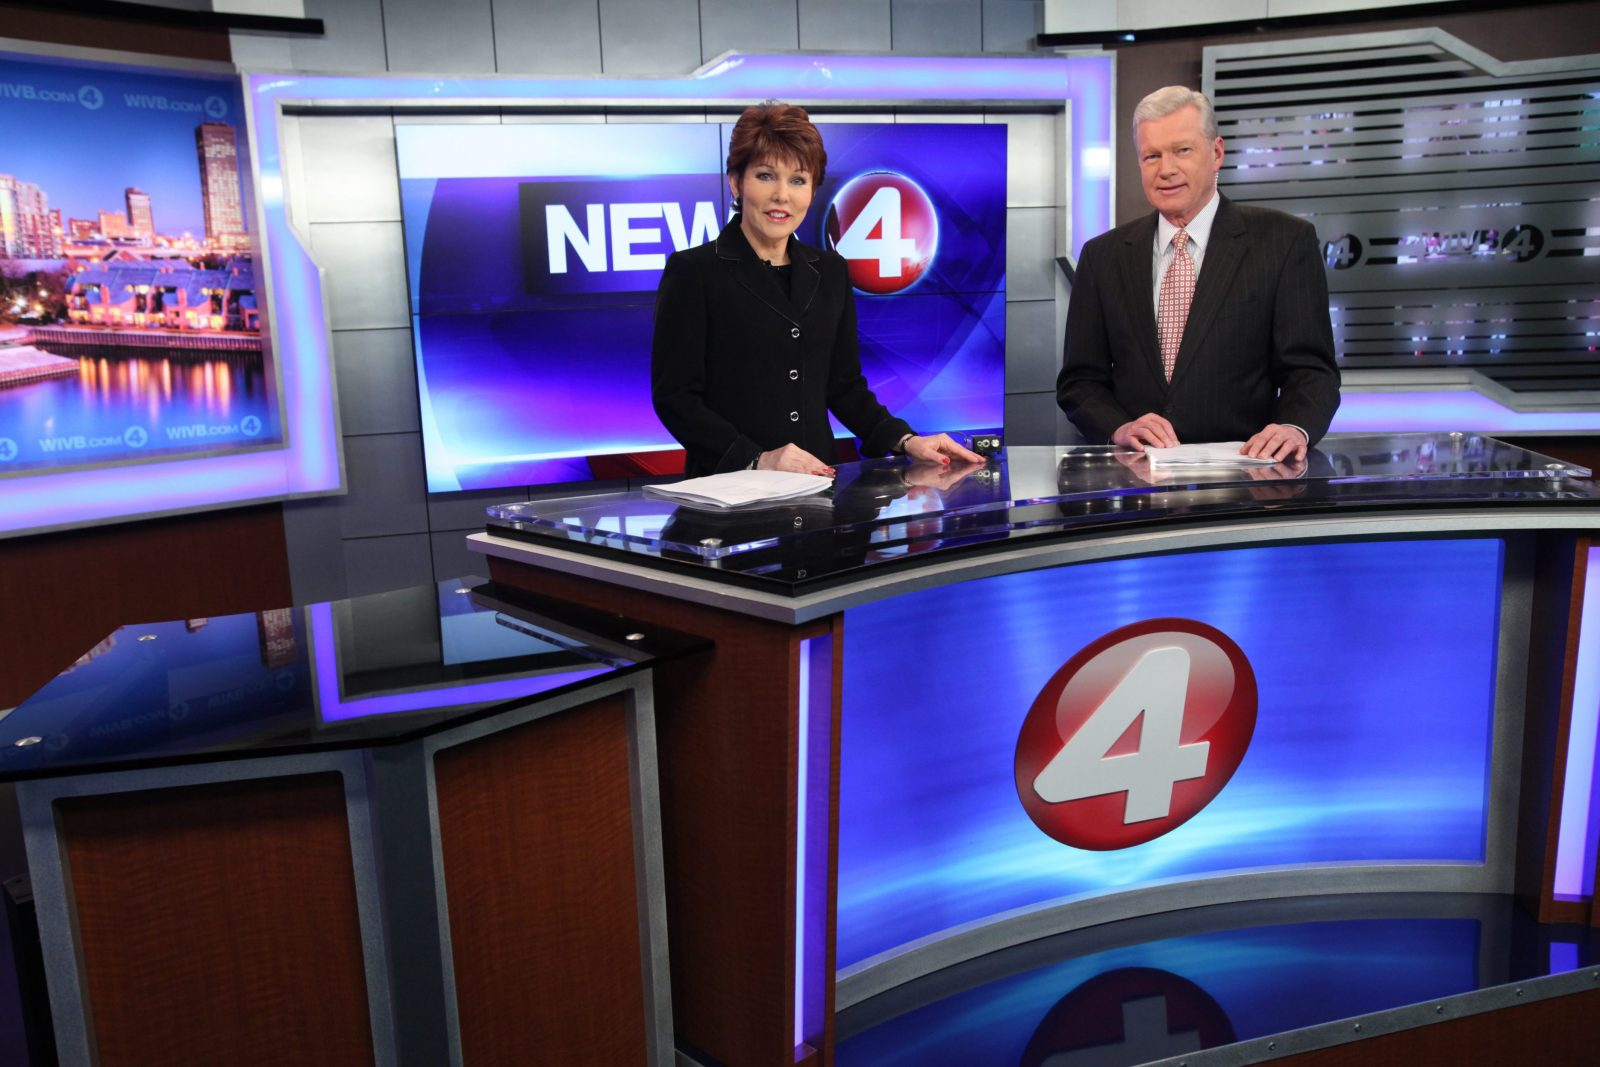 In the seven key time periods, Channel 4 can proclaim victory with a total of 43.1 ratings points to 41.3 points for Channel 2. (Sharon Cantillon / Buffalo News)